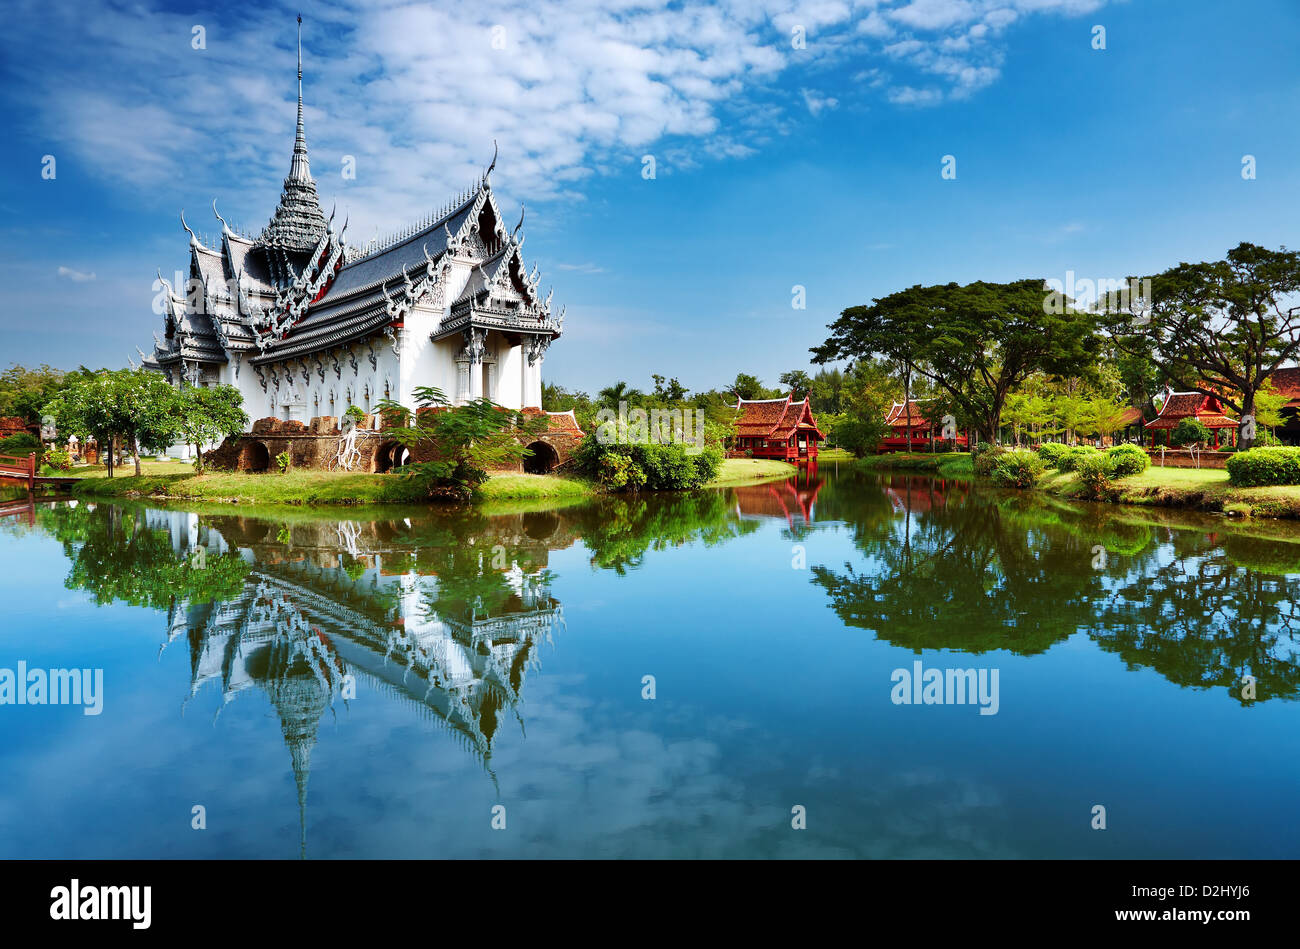 Sanphet Prasat Palace, Ancient City, Bangkok, Thailand - Stock Image